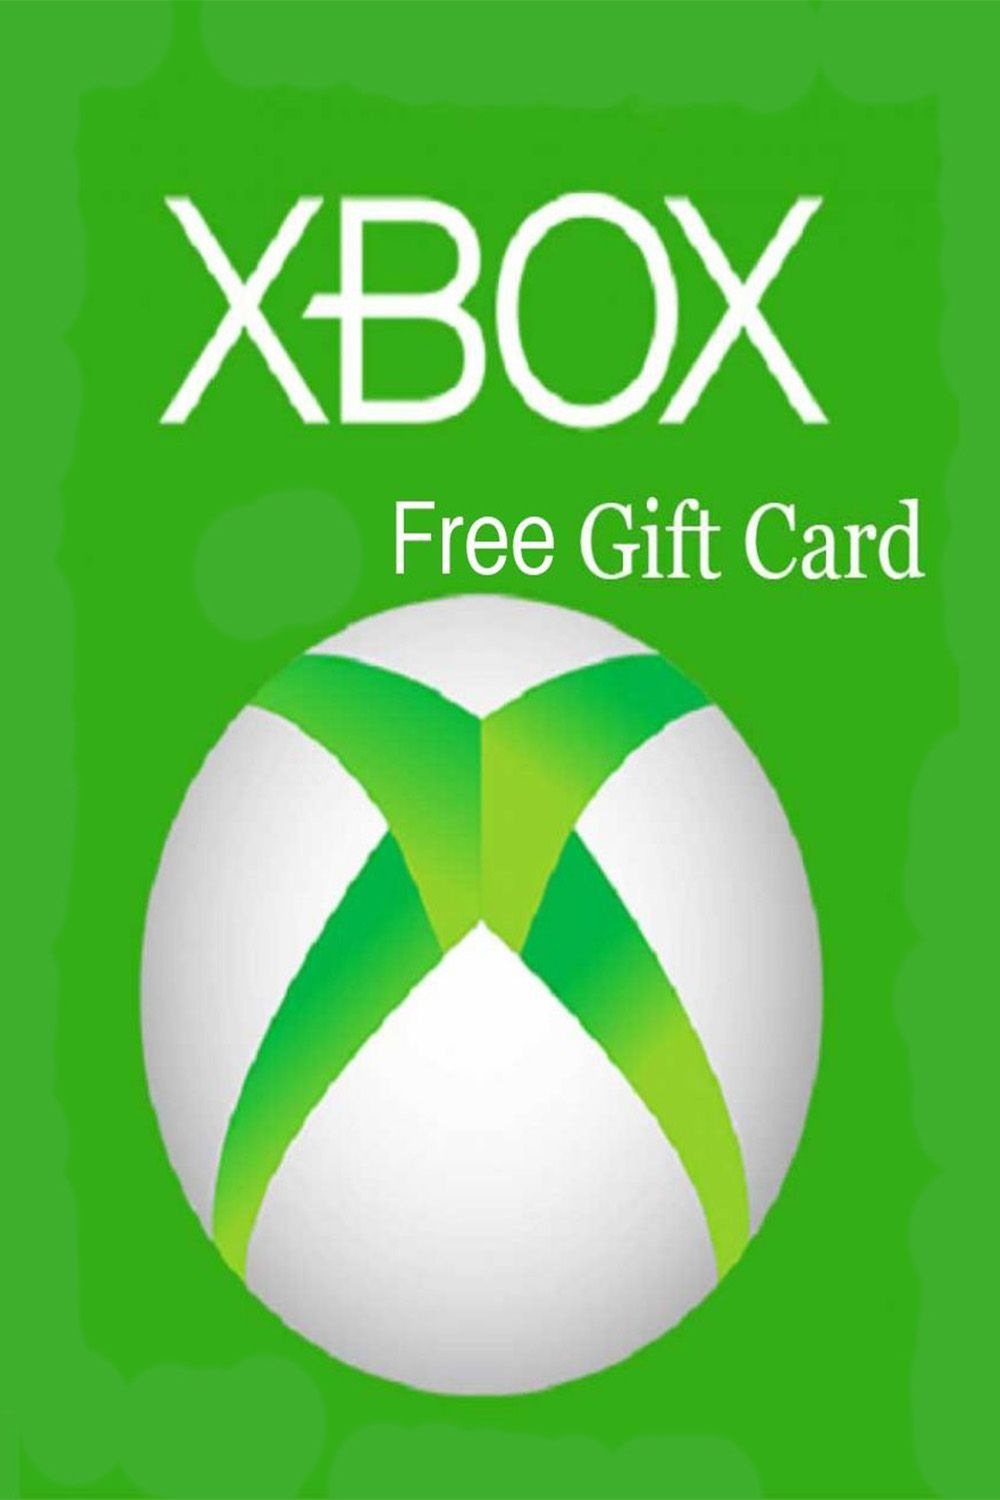 Free Xbox Gift Card, Xbox Code. To get this offer, you